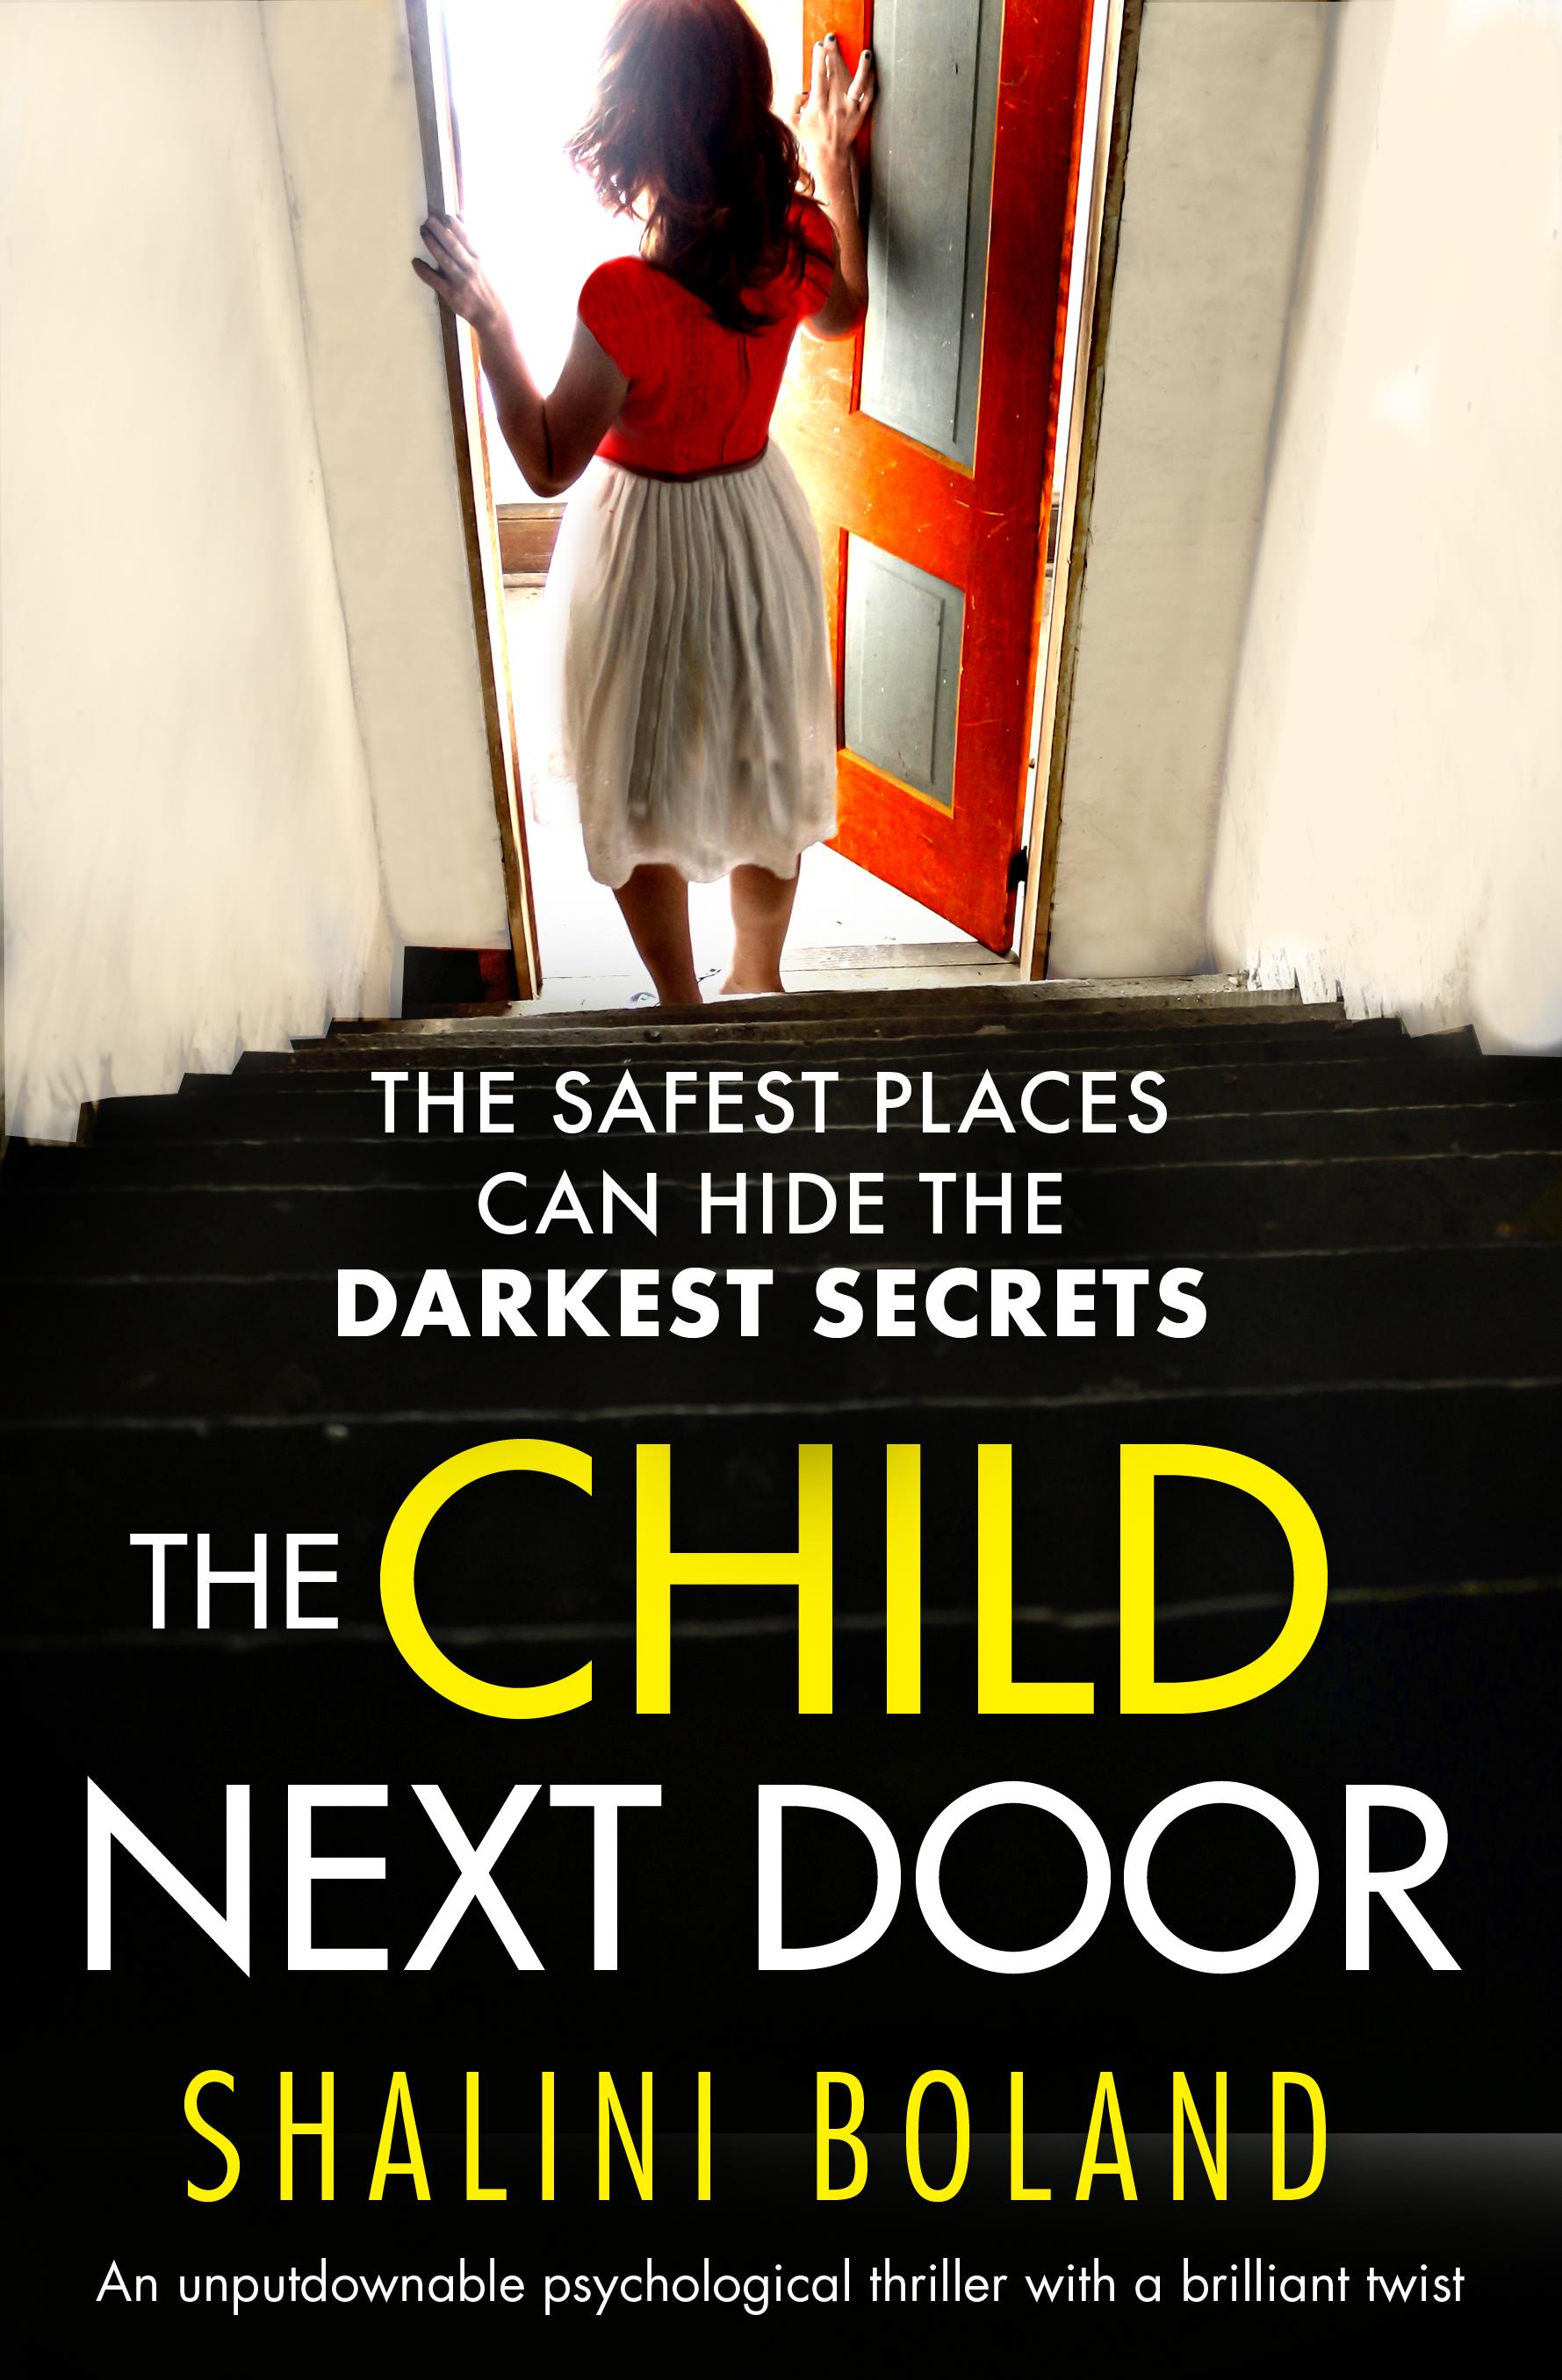 Open The Curtain The Child Next Door By Shalini Boland  -8556